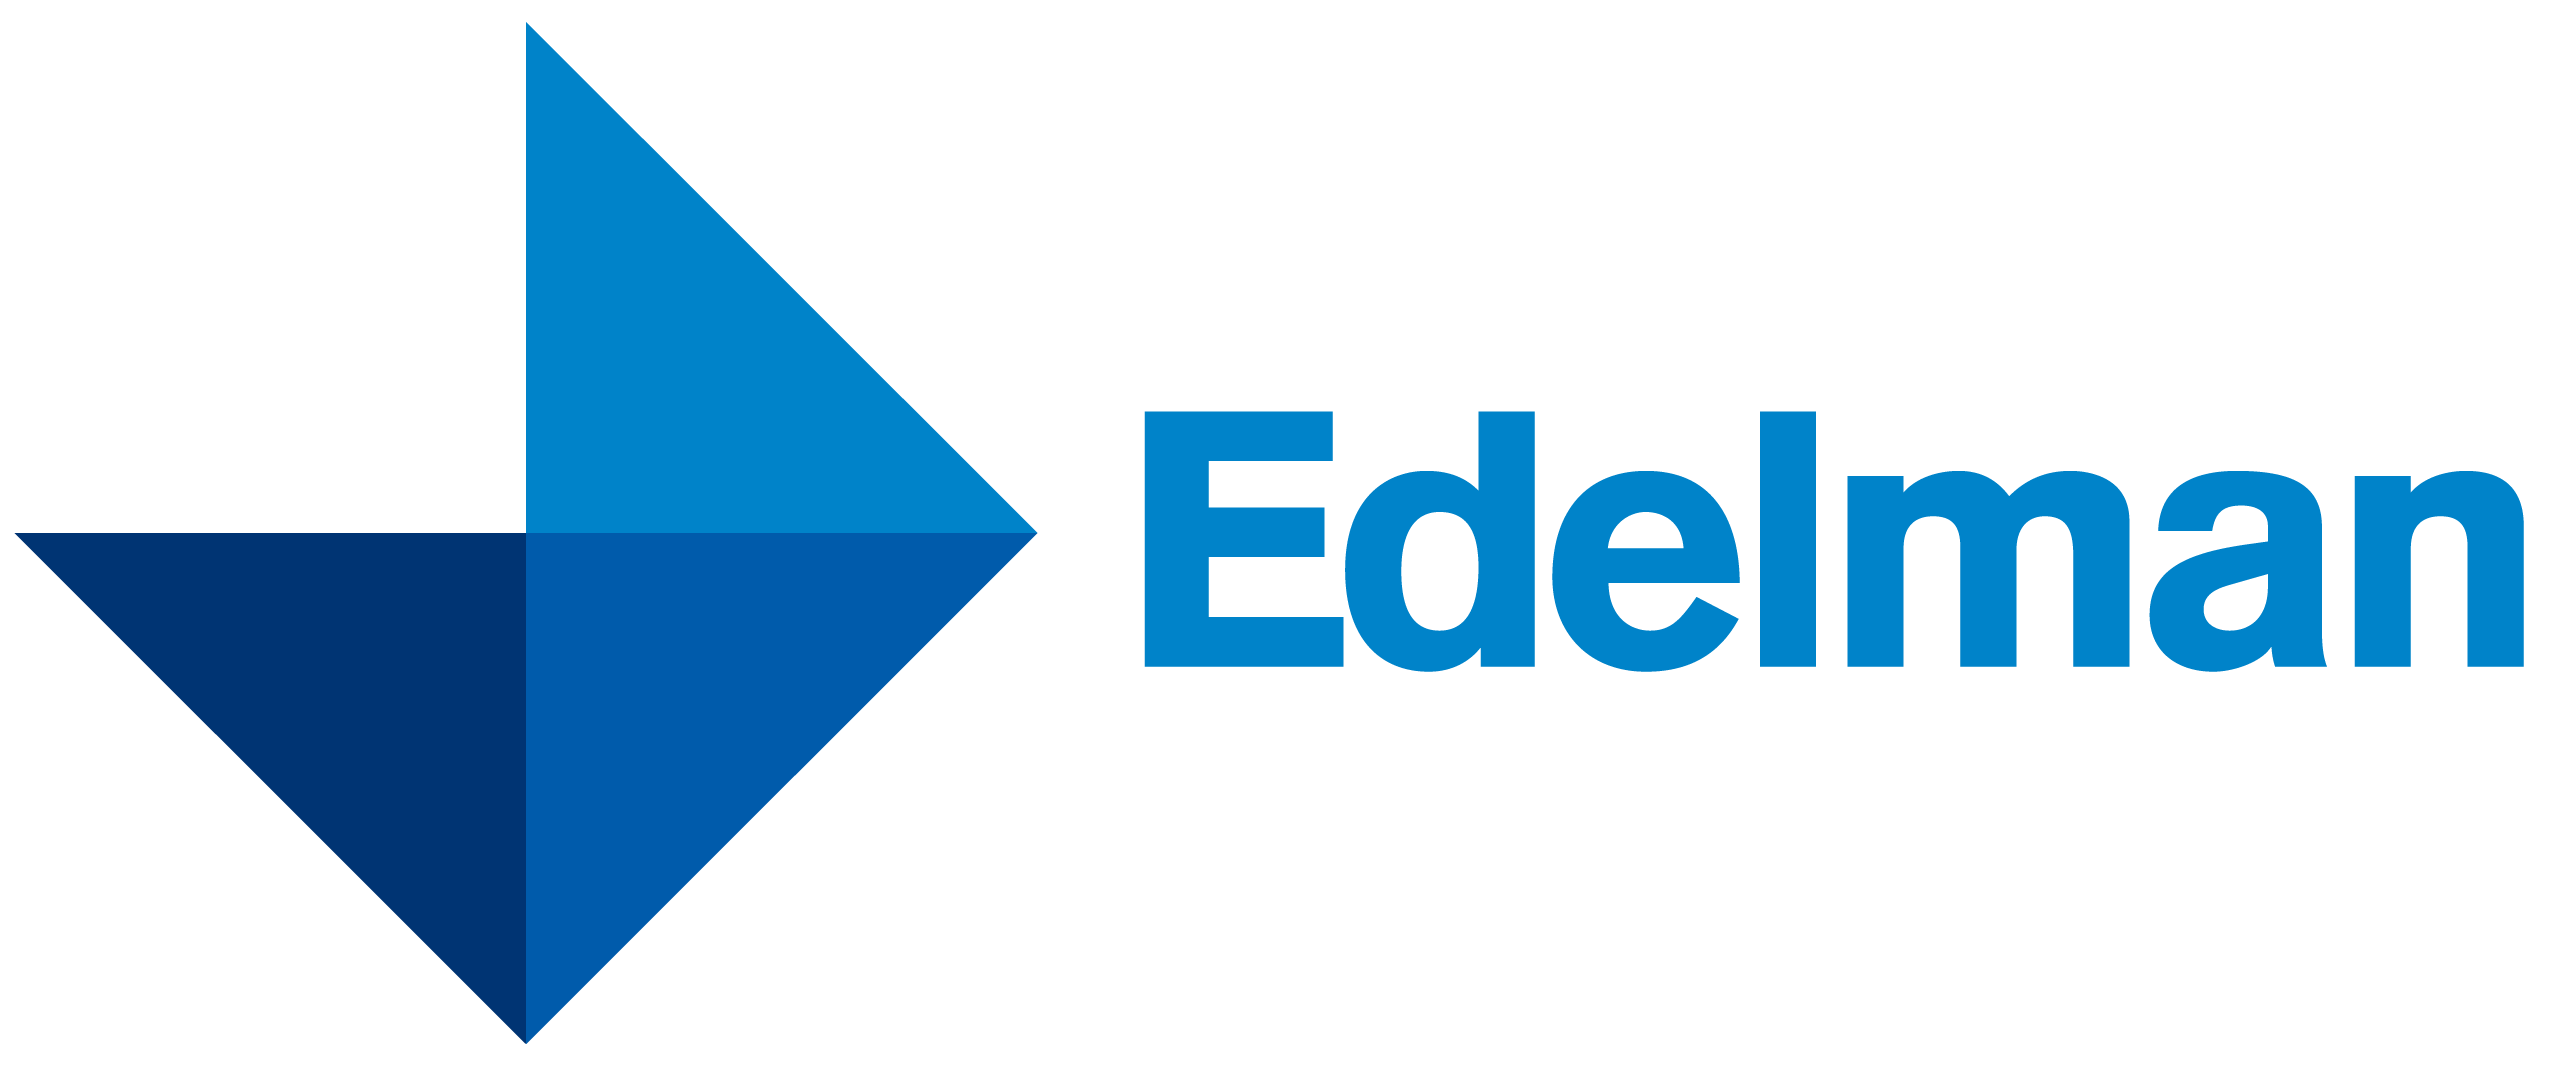 Edelman chicago logo